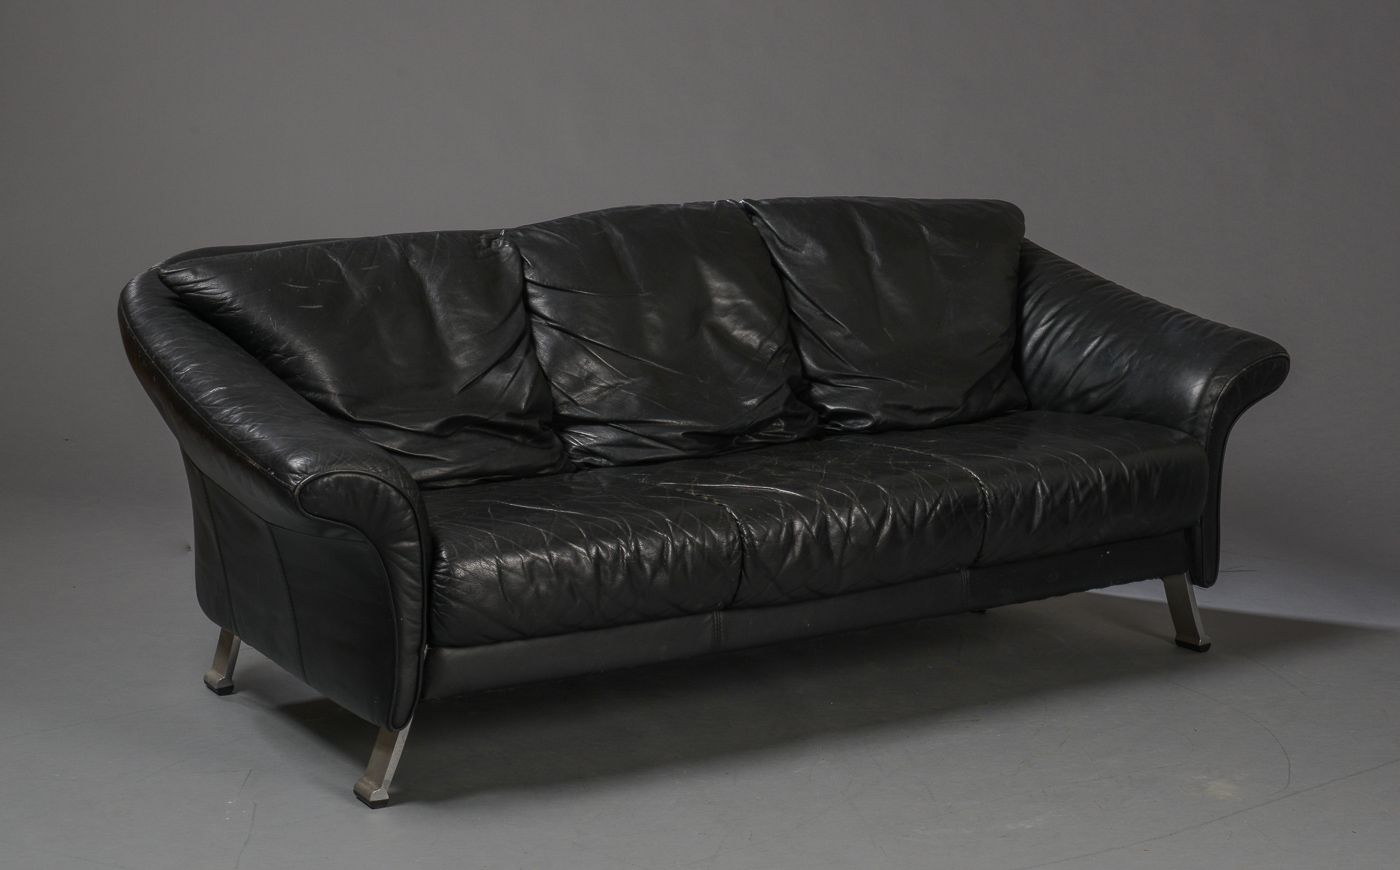 Vintage Leather Sofa By Rolf Benz For Benz M Belproduktion